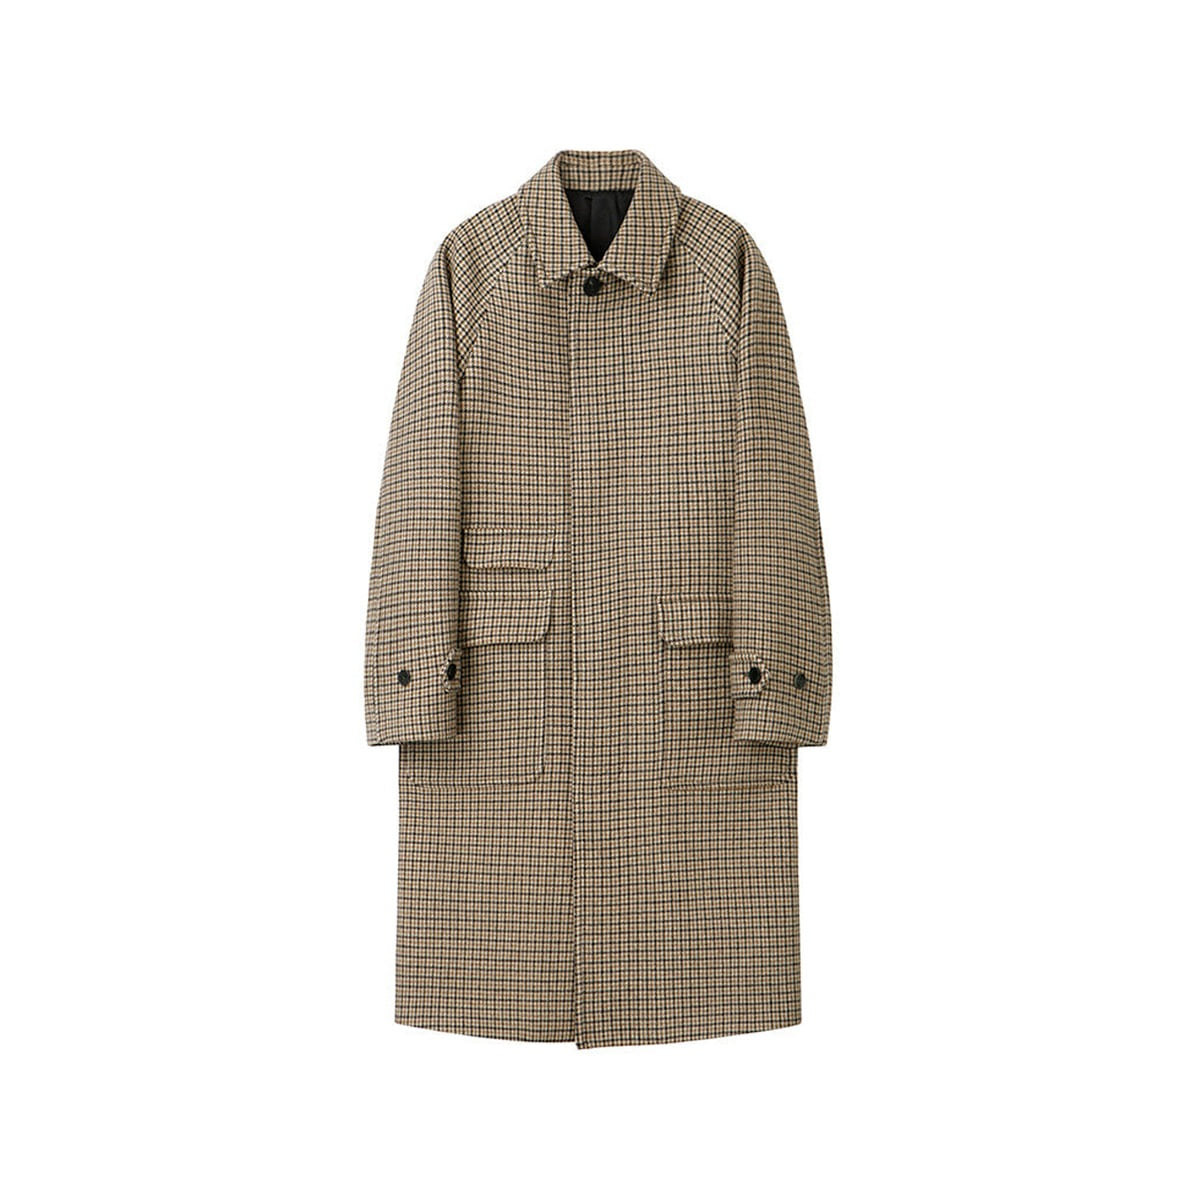 [ART IF ACTS] BALMACAAN COAT 'CHECK'